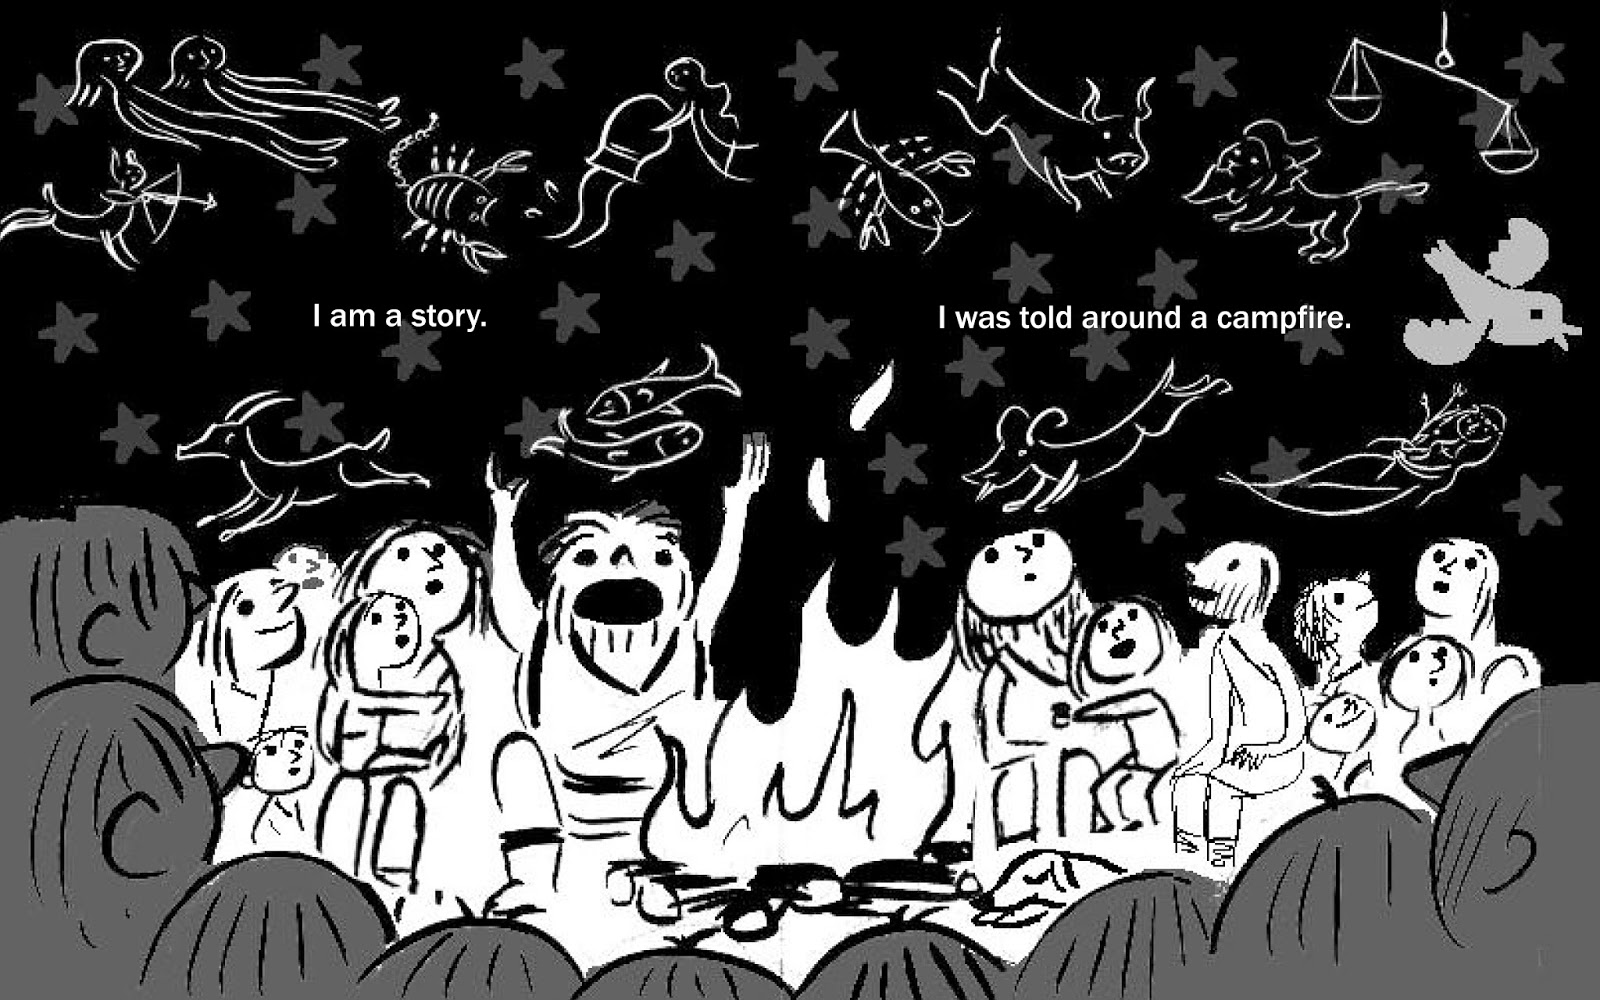 So I Combined The Image Of Early Man Around A Campfire With Signs Zodiac Swirling In Night Sky Above To Suggest That These Are Stories